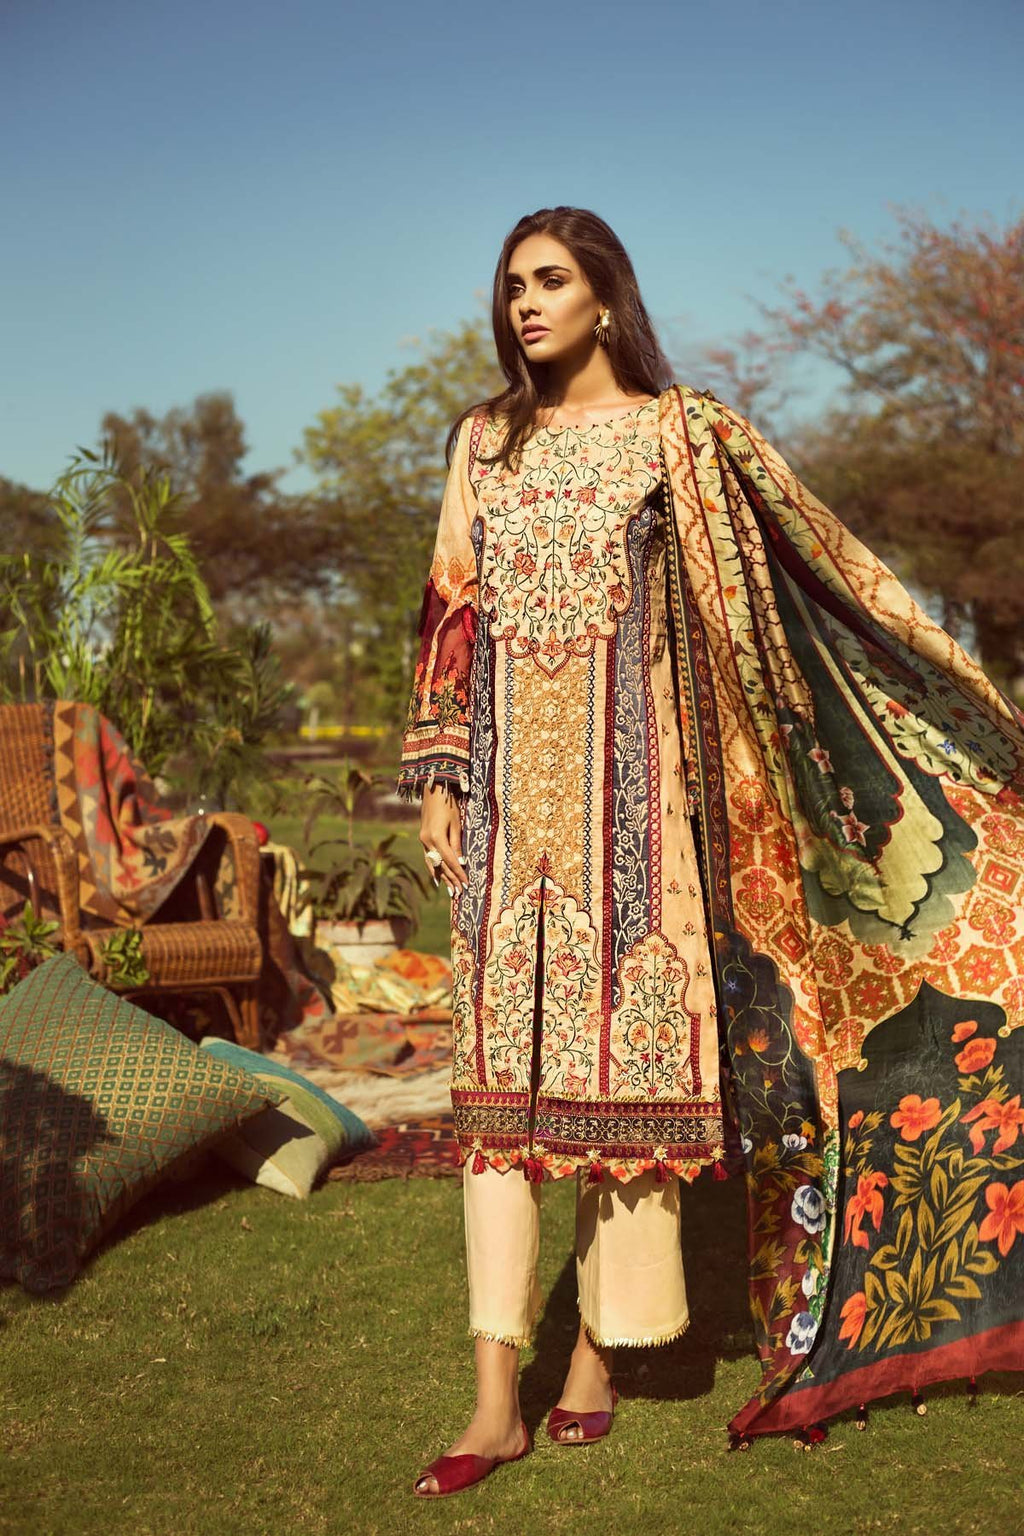 Jazmin Lawn Persuit Of Wanderlust 2019 suit Mandarin - Embroidered Orange Lawn kameez with printed silk dupatta